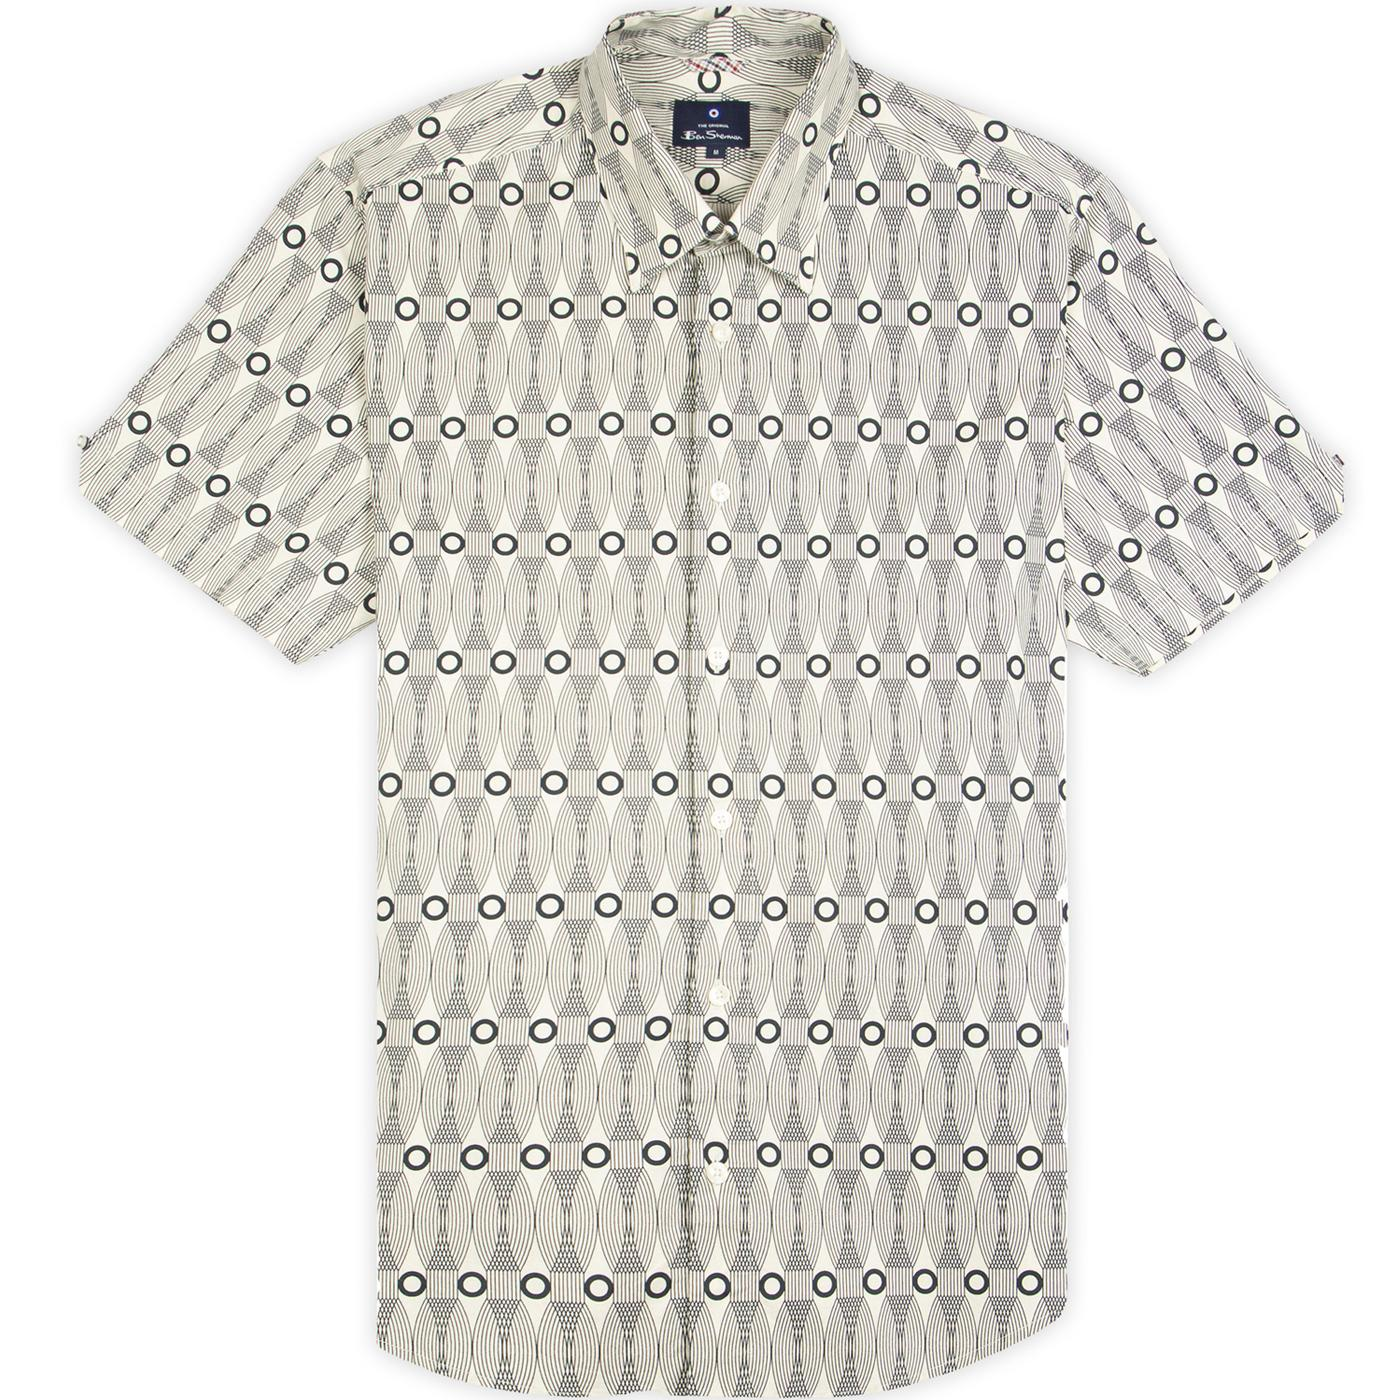 BEN SHERMAN Retro 60s Op Art Surf Print Shirt ECRU